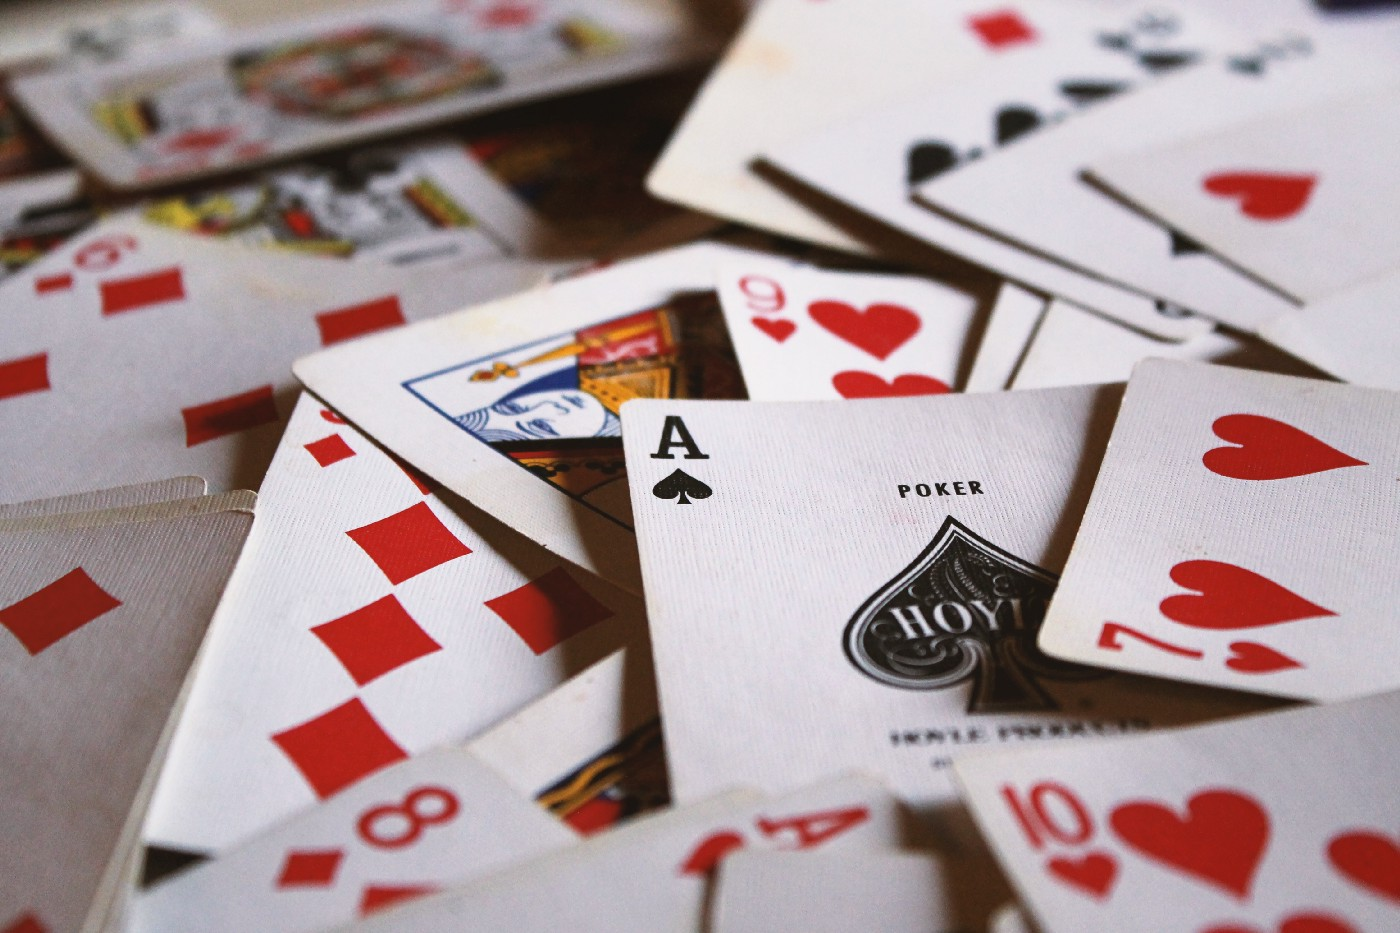 A deck of cards is spread across a table. On top, an ace of spades is visible.